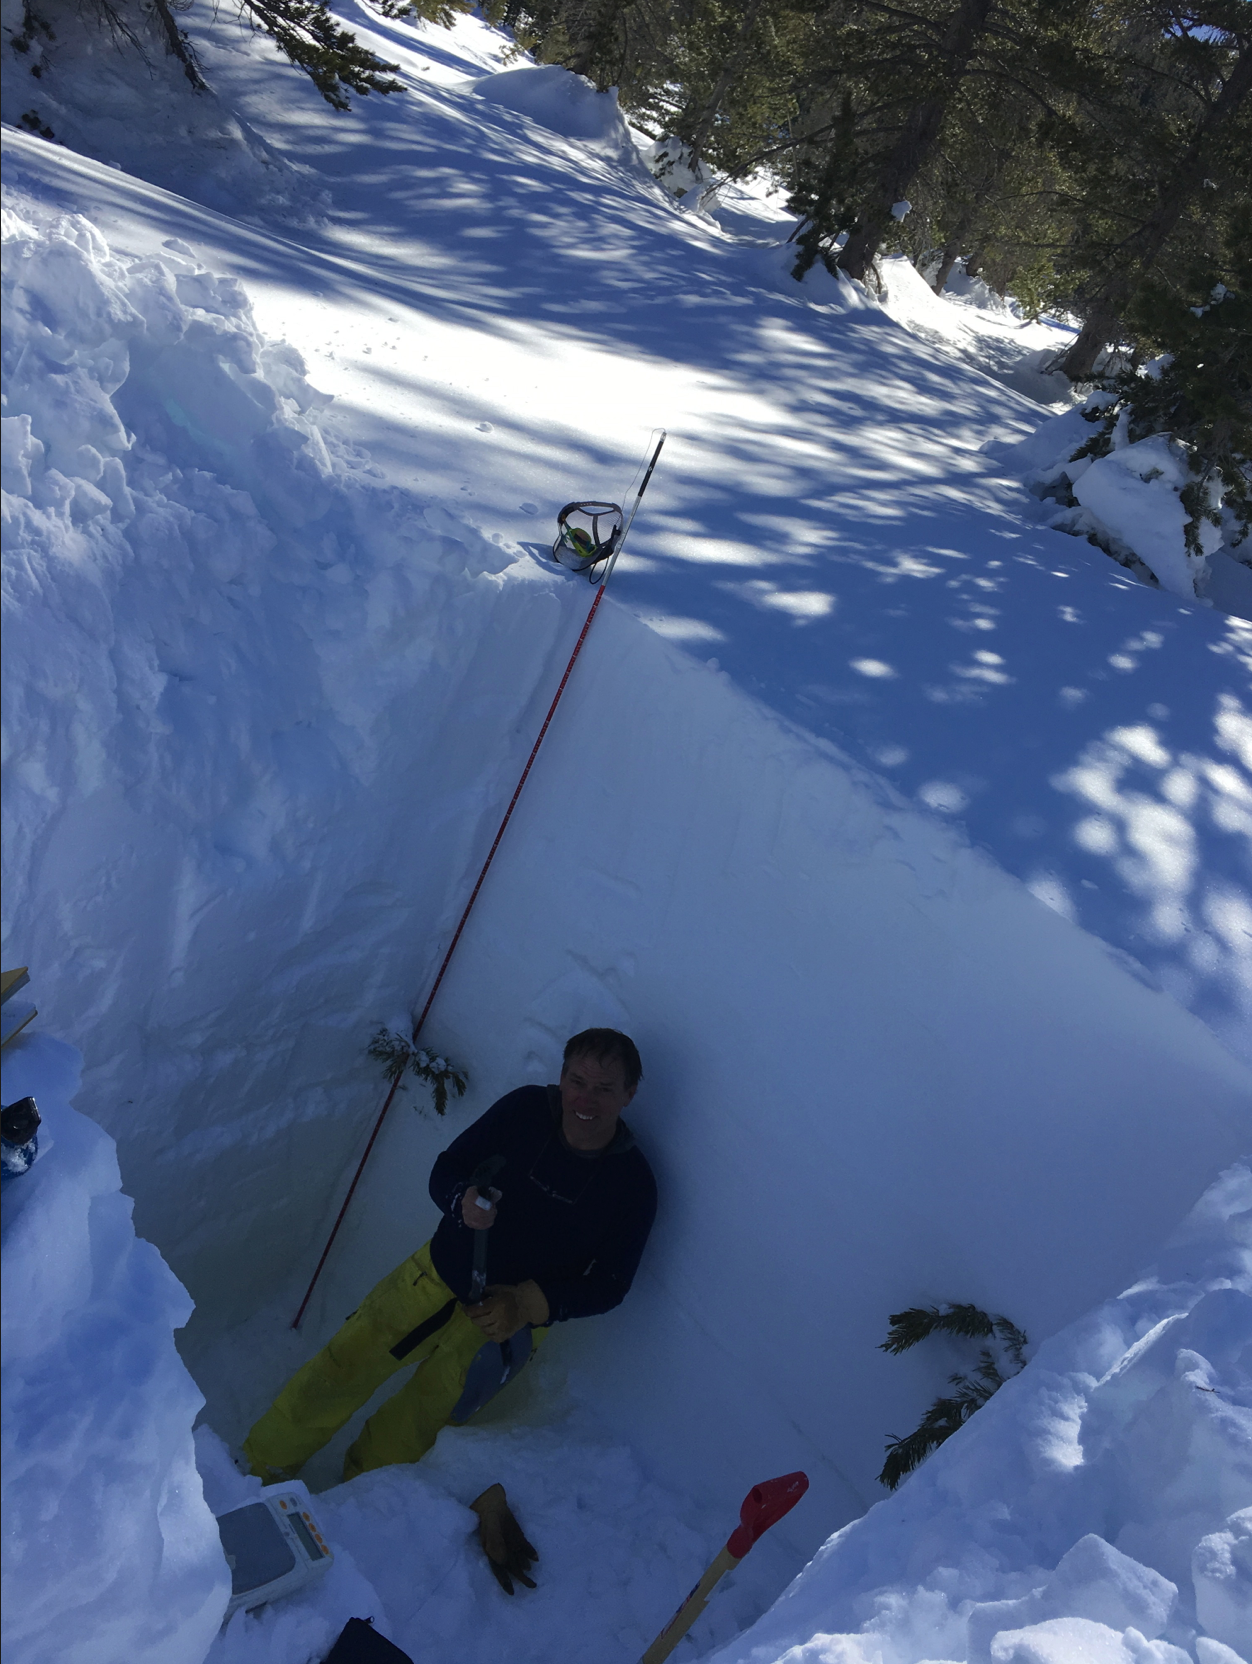 Snow hydrologist Tom Painter takes a break after digging out a snow pit, to measure density and other parameters.